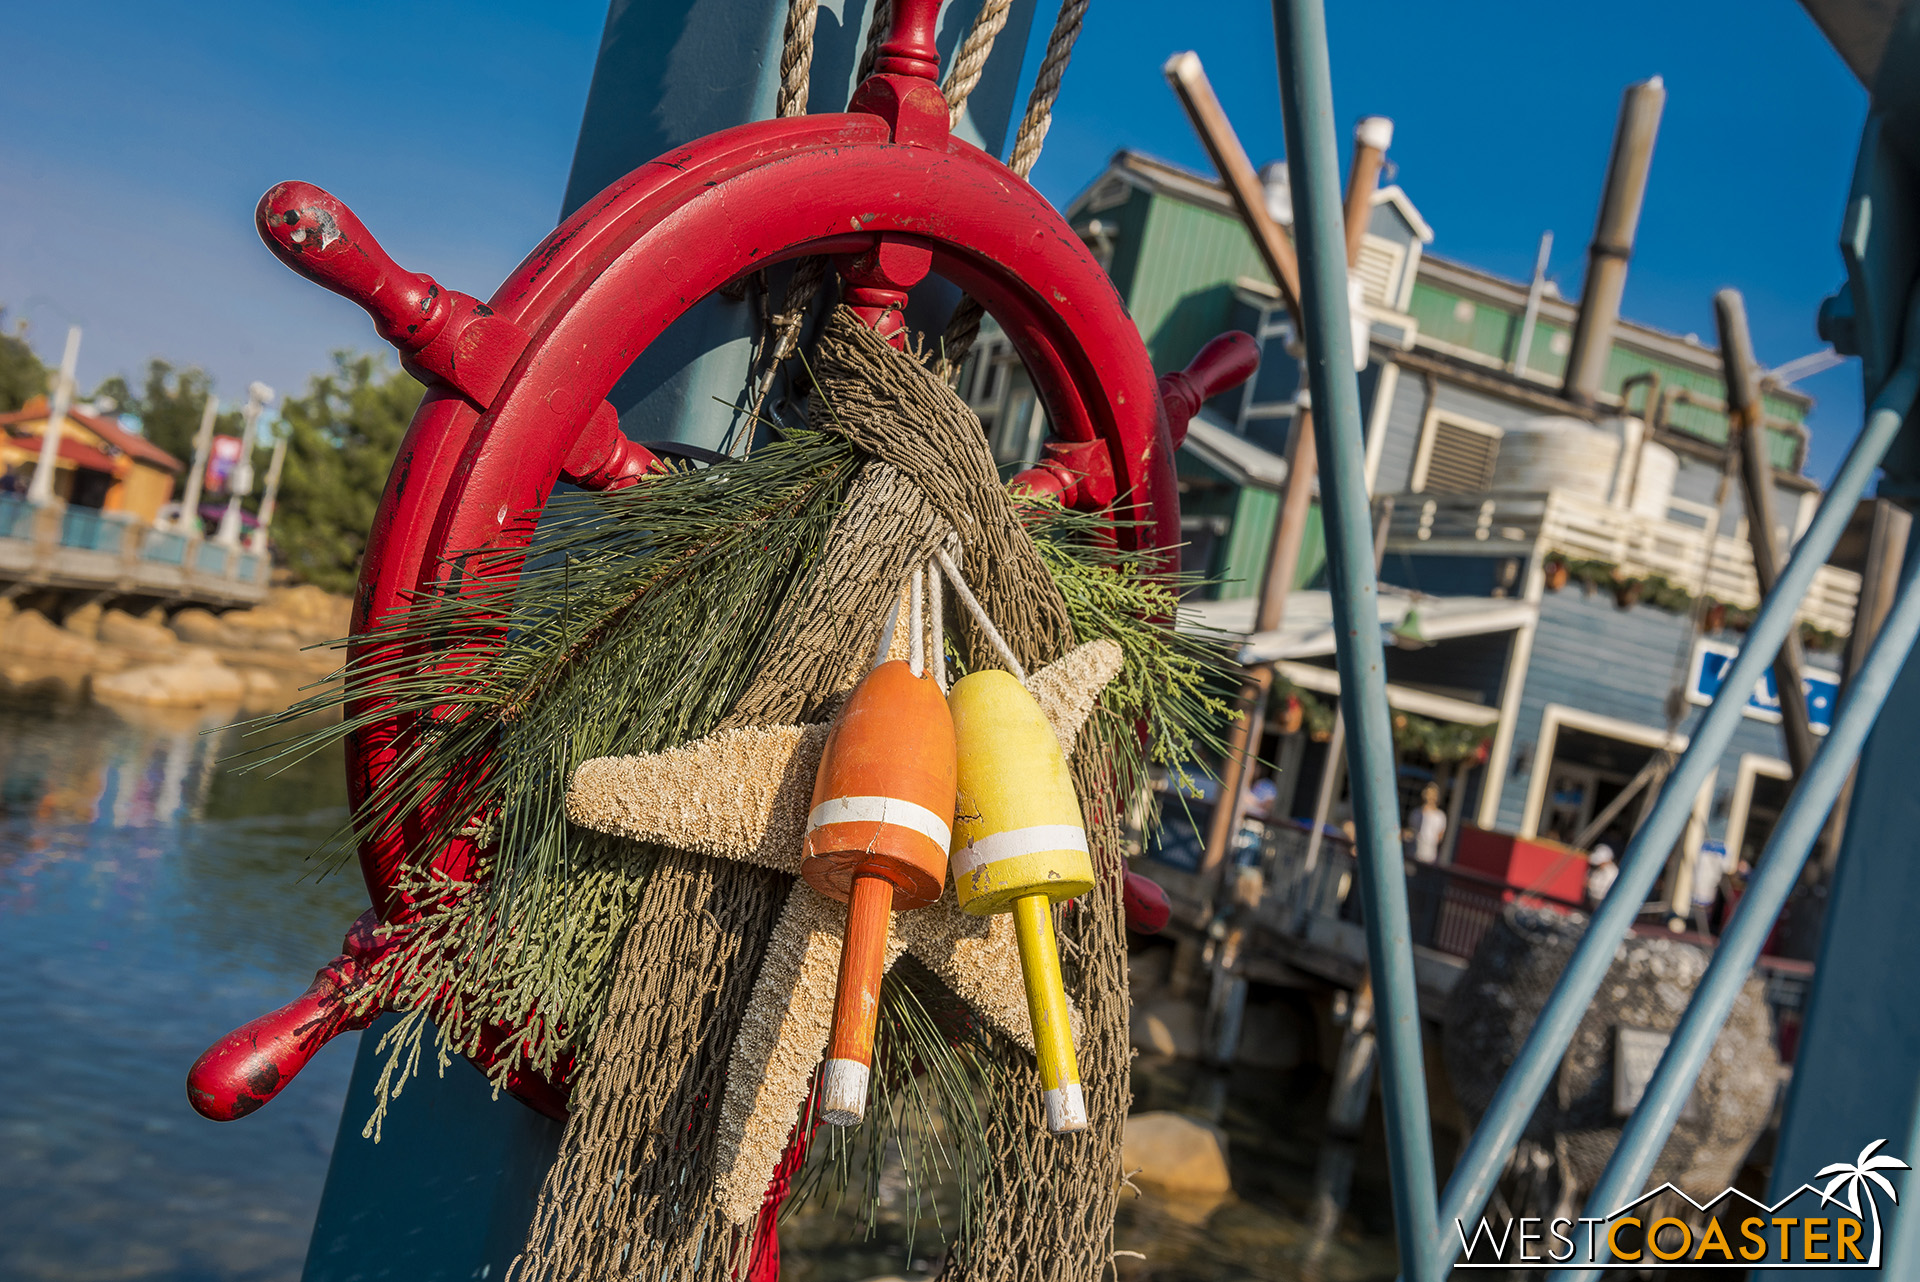 Pacific Wharf has a more rustic take on holiday theming.